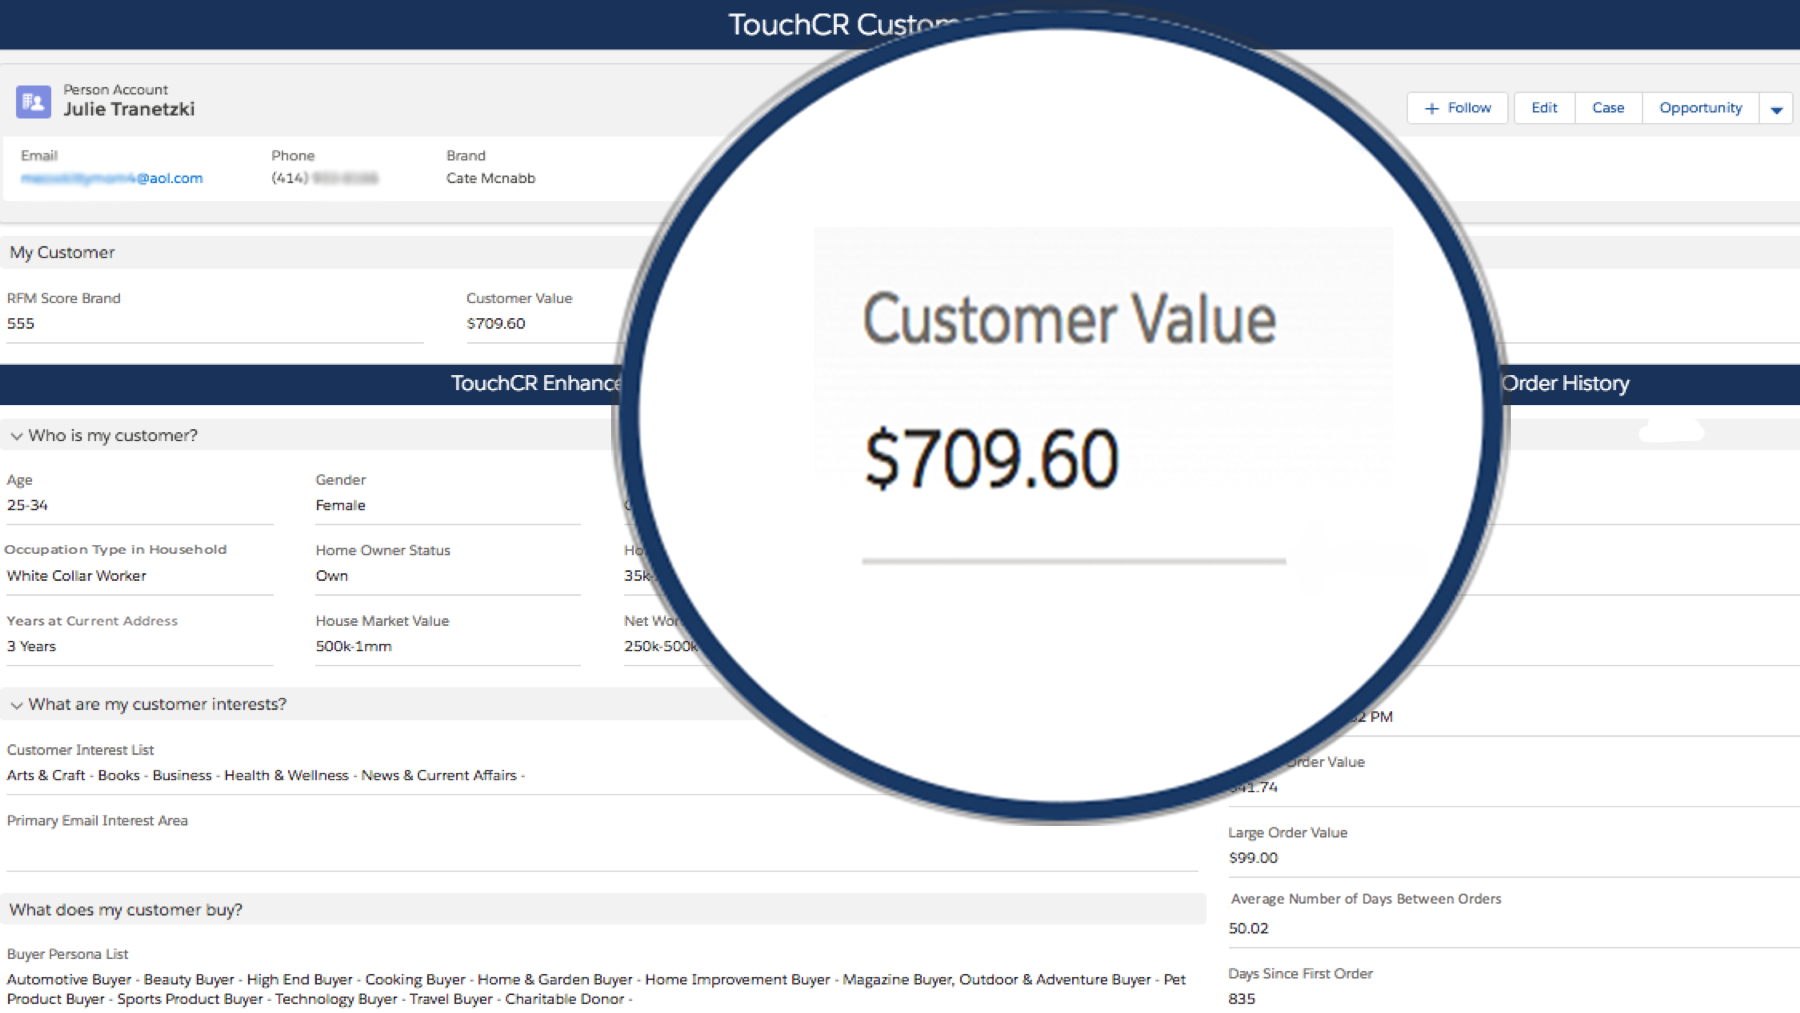 Track Customer Value Over Time